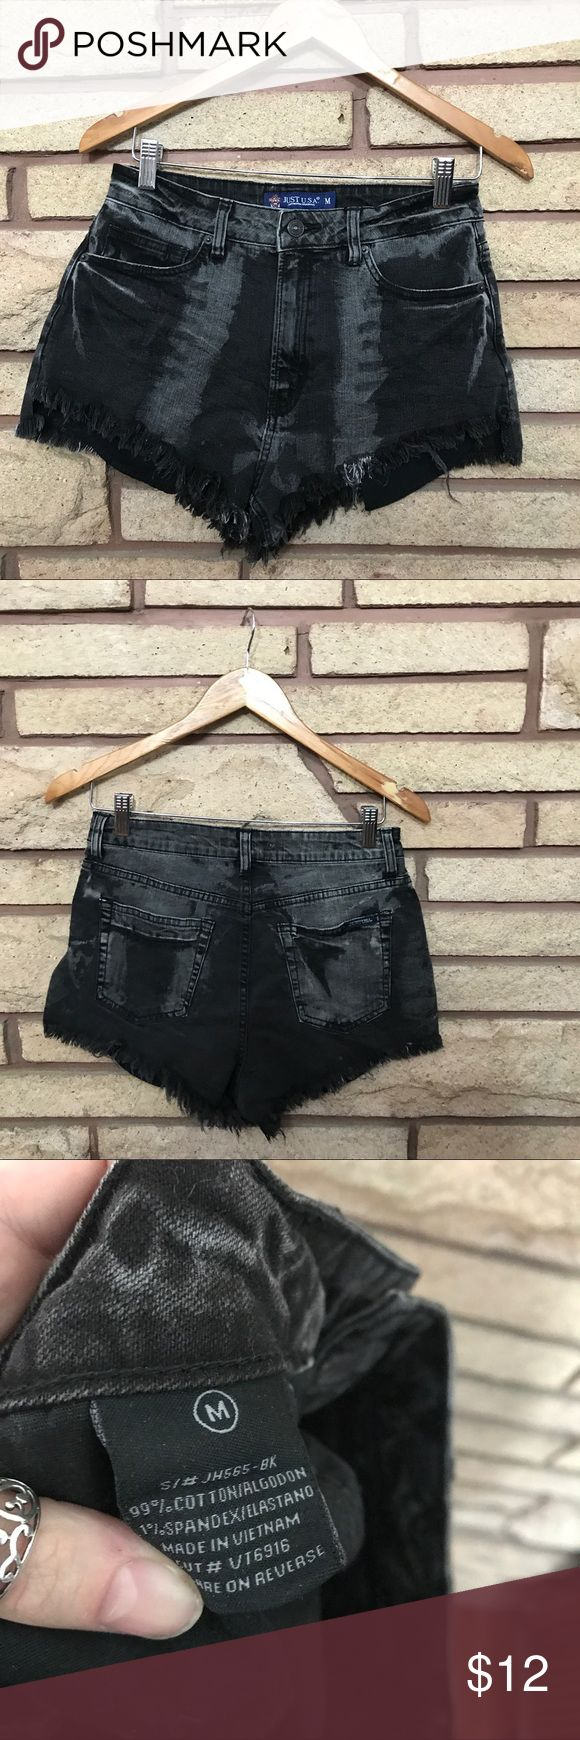 Fun High Waisted Black Denim Shorts 🌑Unique High waisted shorts   🌘In excellent used condition    🌗Material: 99% cotton, 1% spandex 🌖Dimensions: 14in waist, 10in long  🌕Offers Welcome 🌔Fast shipping 🌓Sorry, no trades 🌒Bundle and save 30% off two or more items 🌑Free gift with every purchase Just USA Shorts Jean Shorts